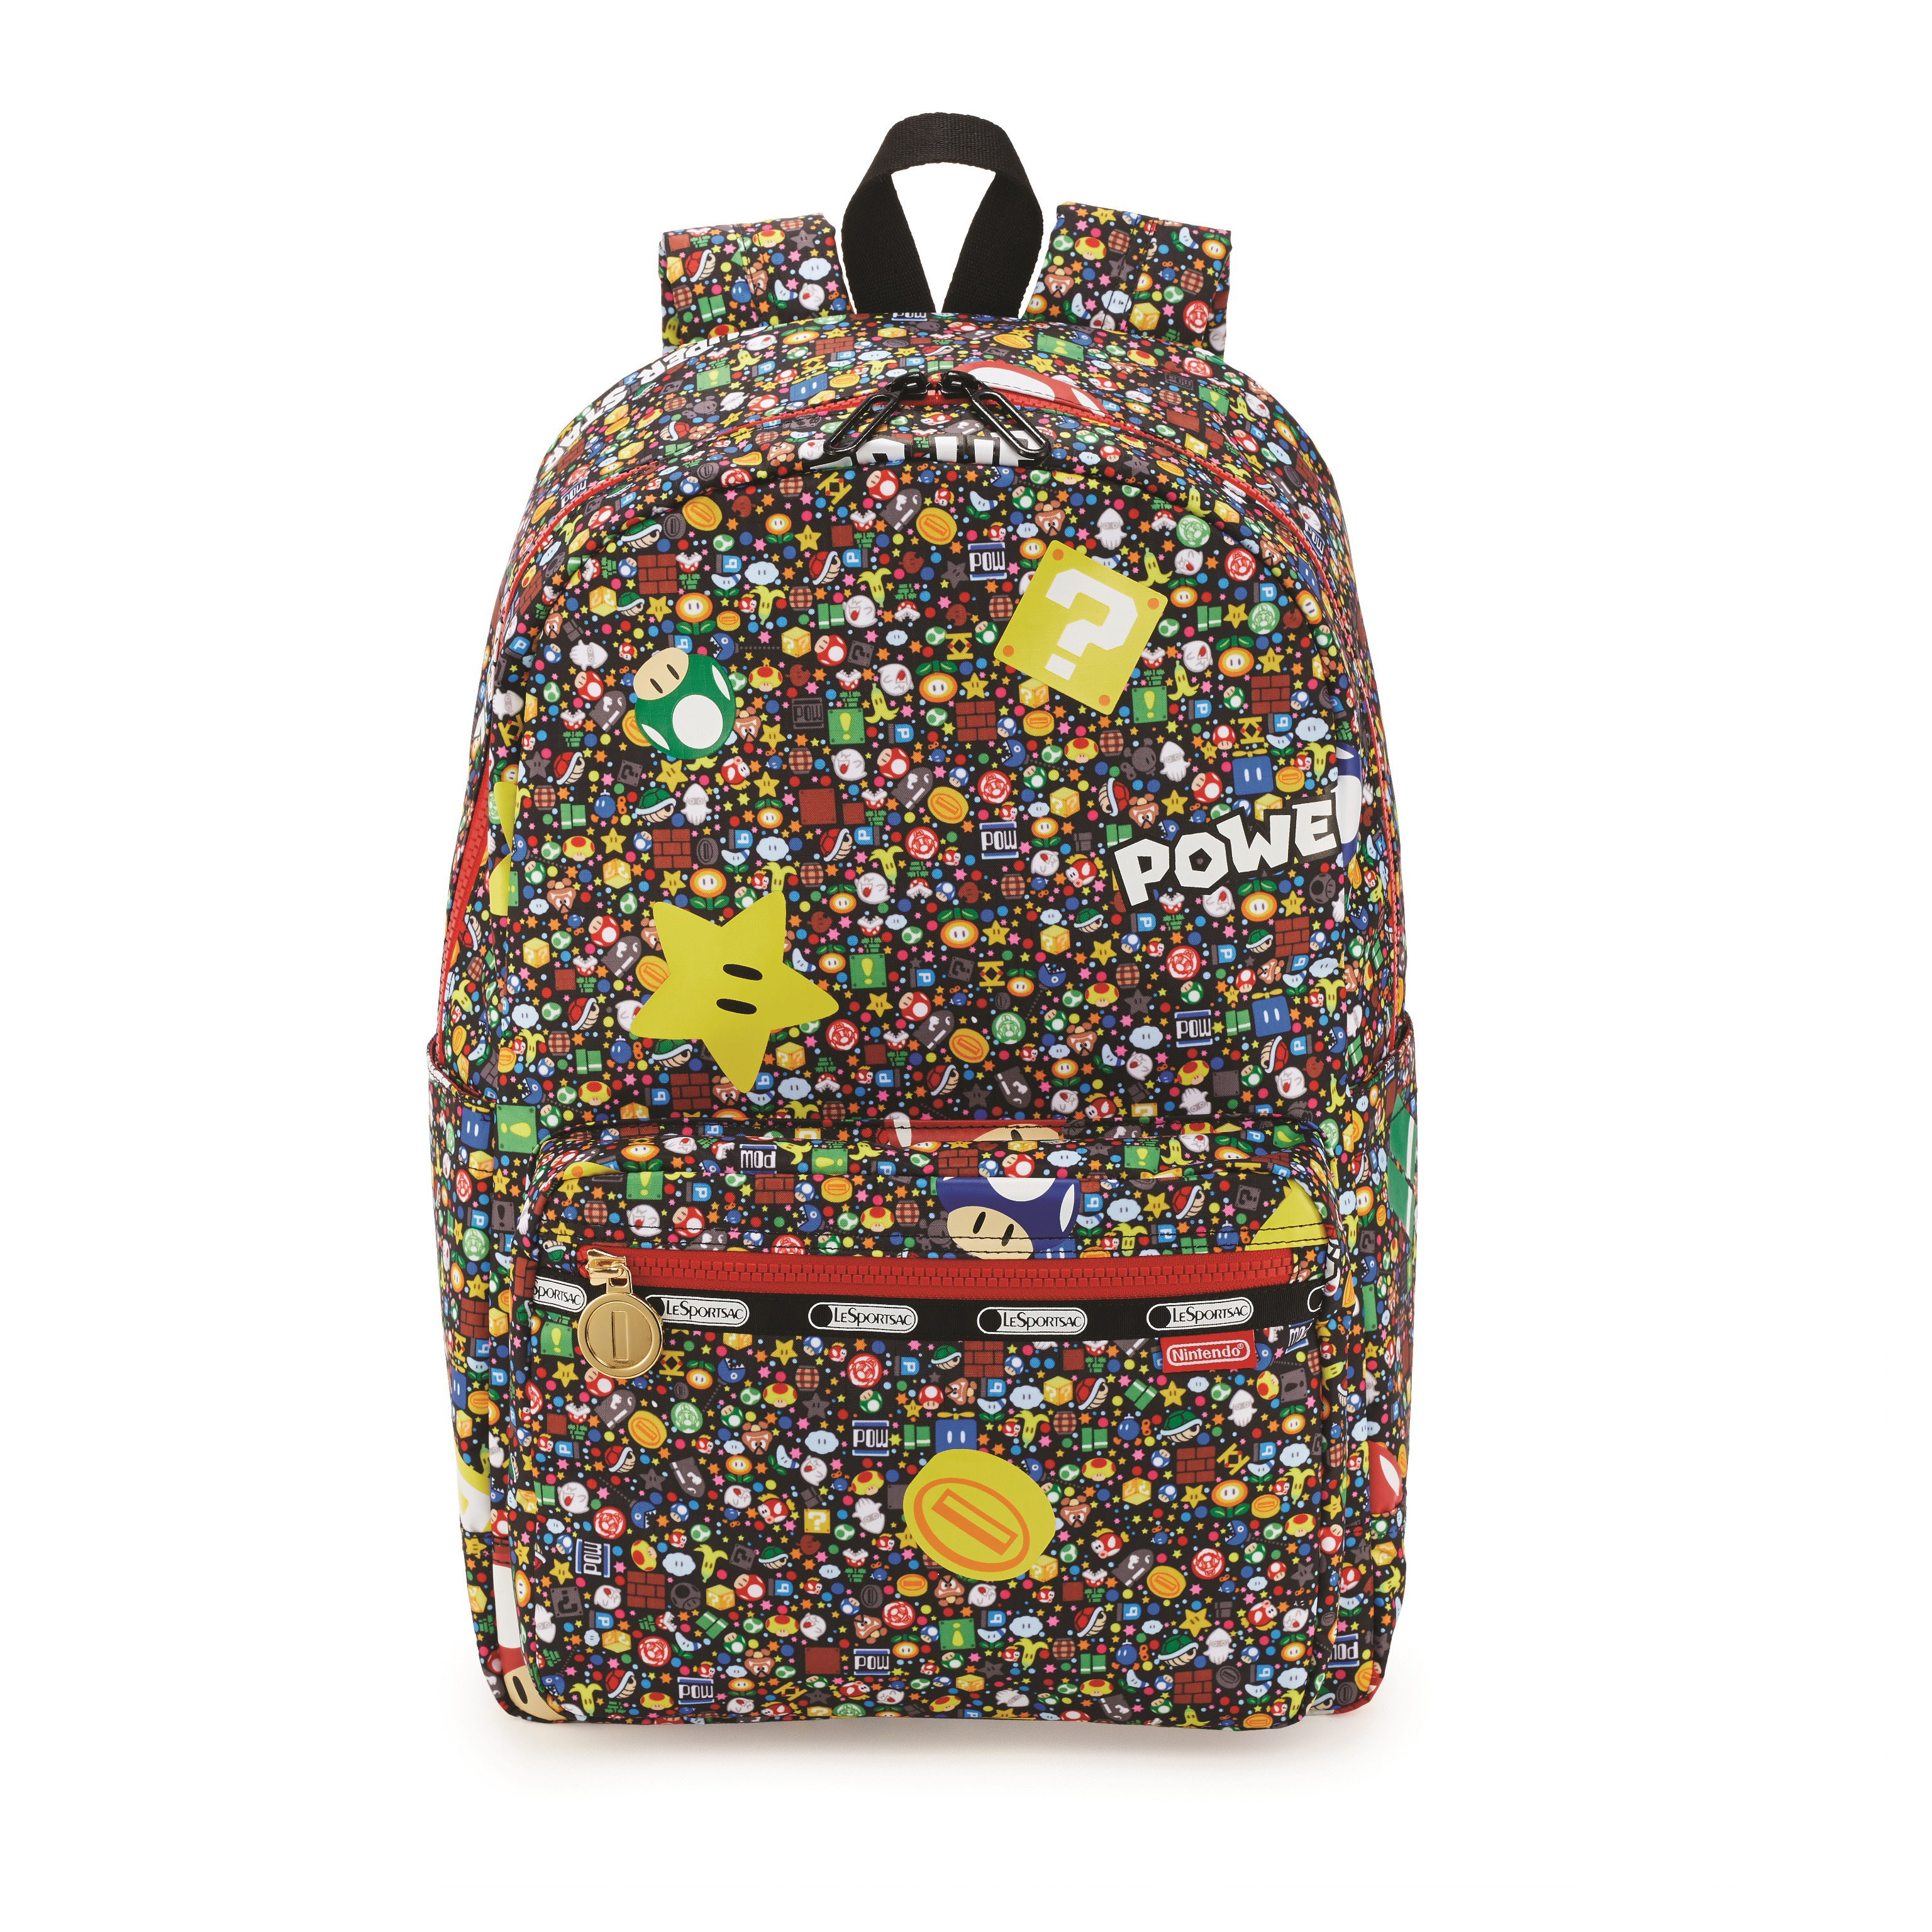 The LeSportsac X Nintendo collection launches in Japan on July 19 and will be available in other countries, including the United States, this fall. (Photo: Business Wire)